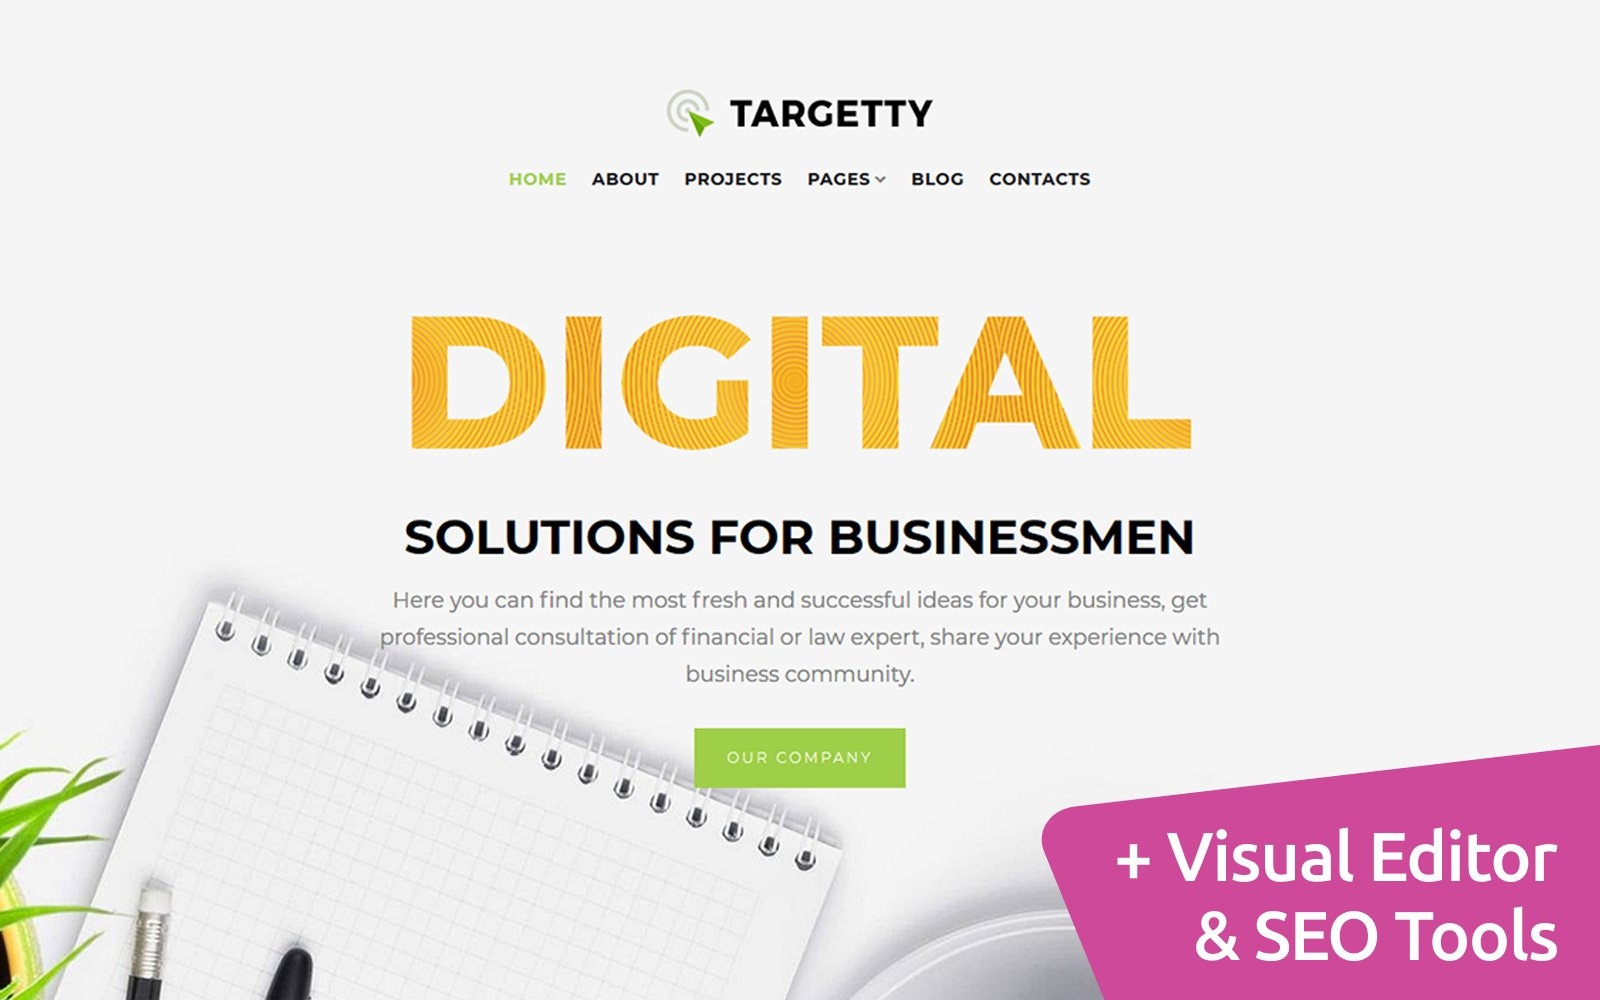 Targetty - Fancy Advertising Agency Moto CMS 3 Template